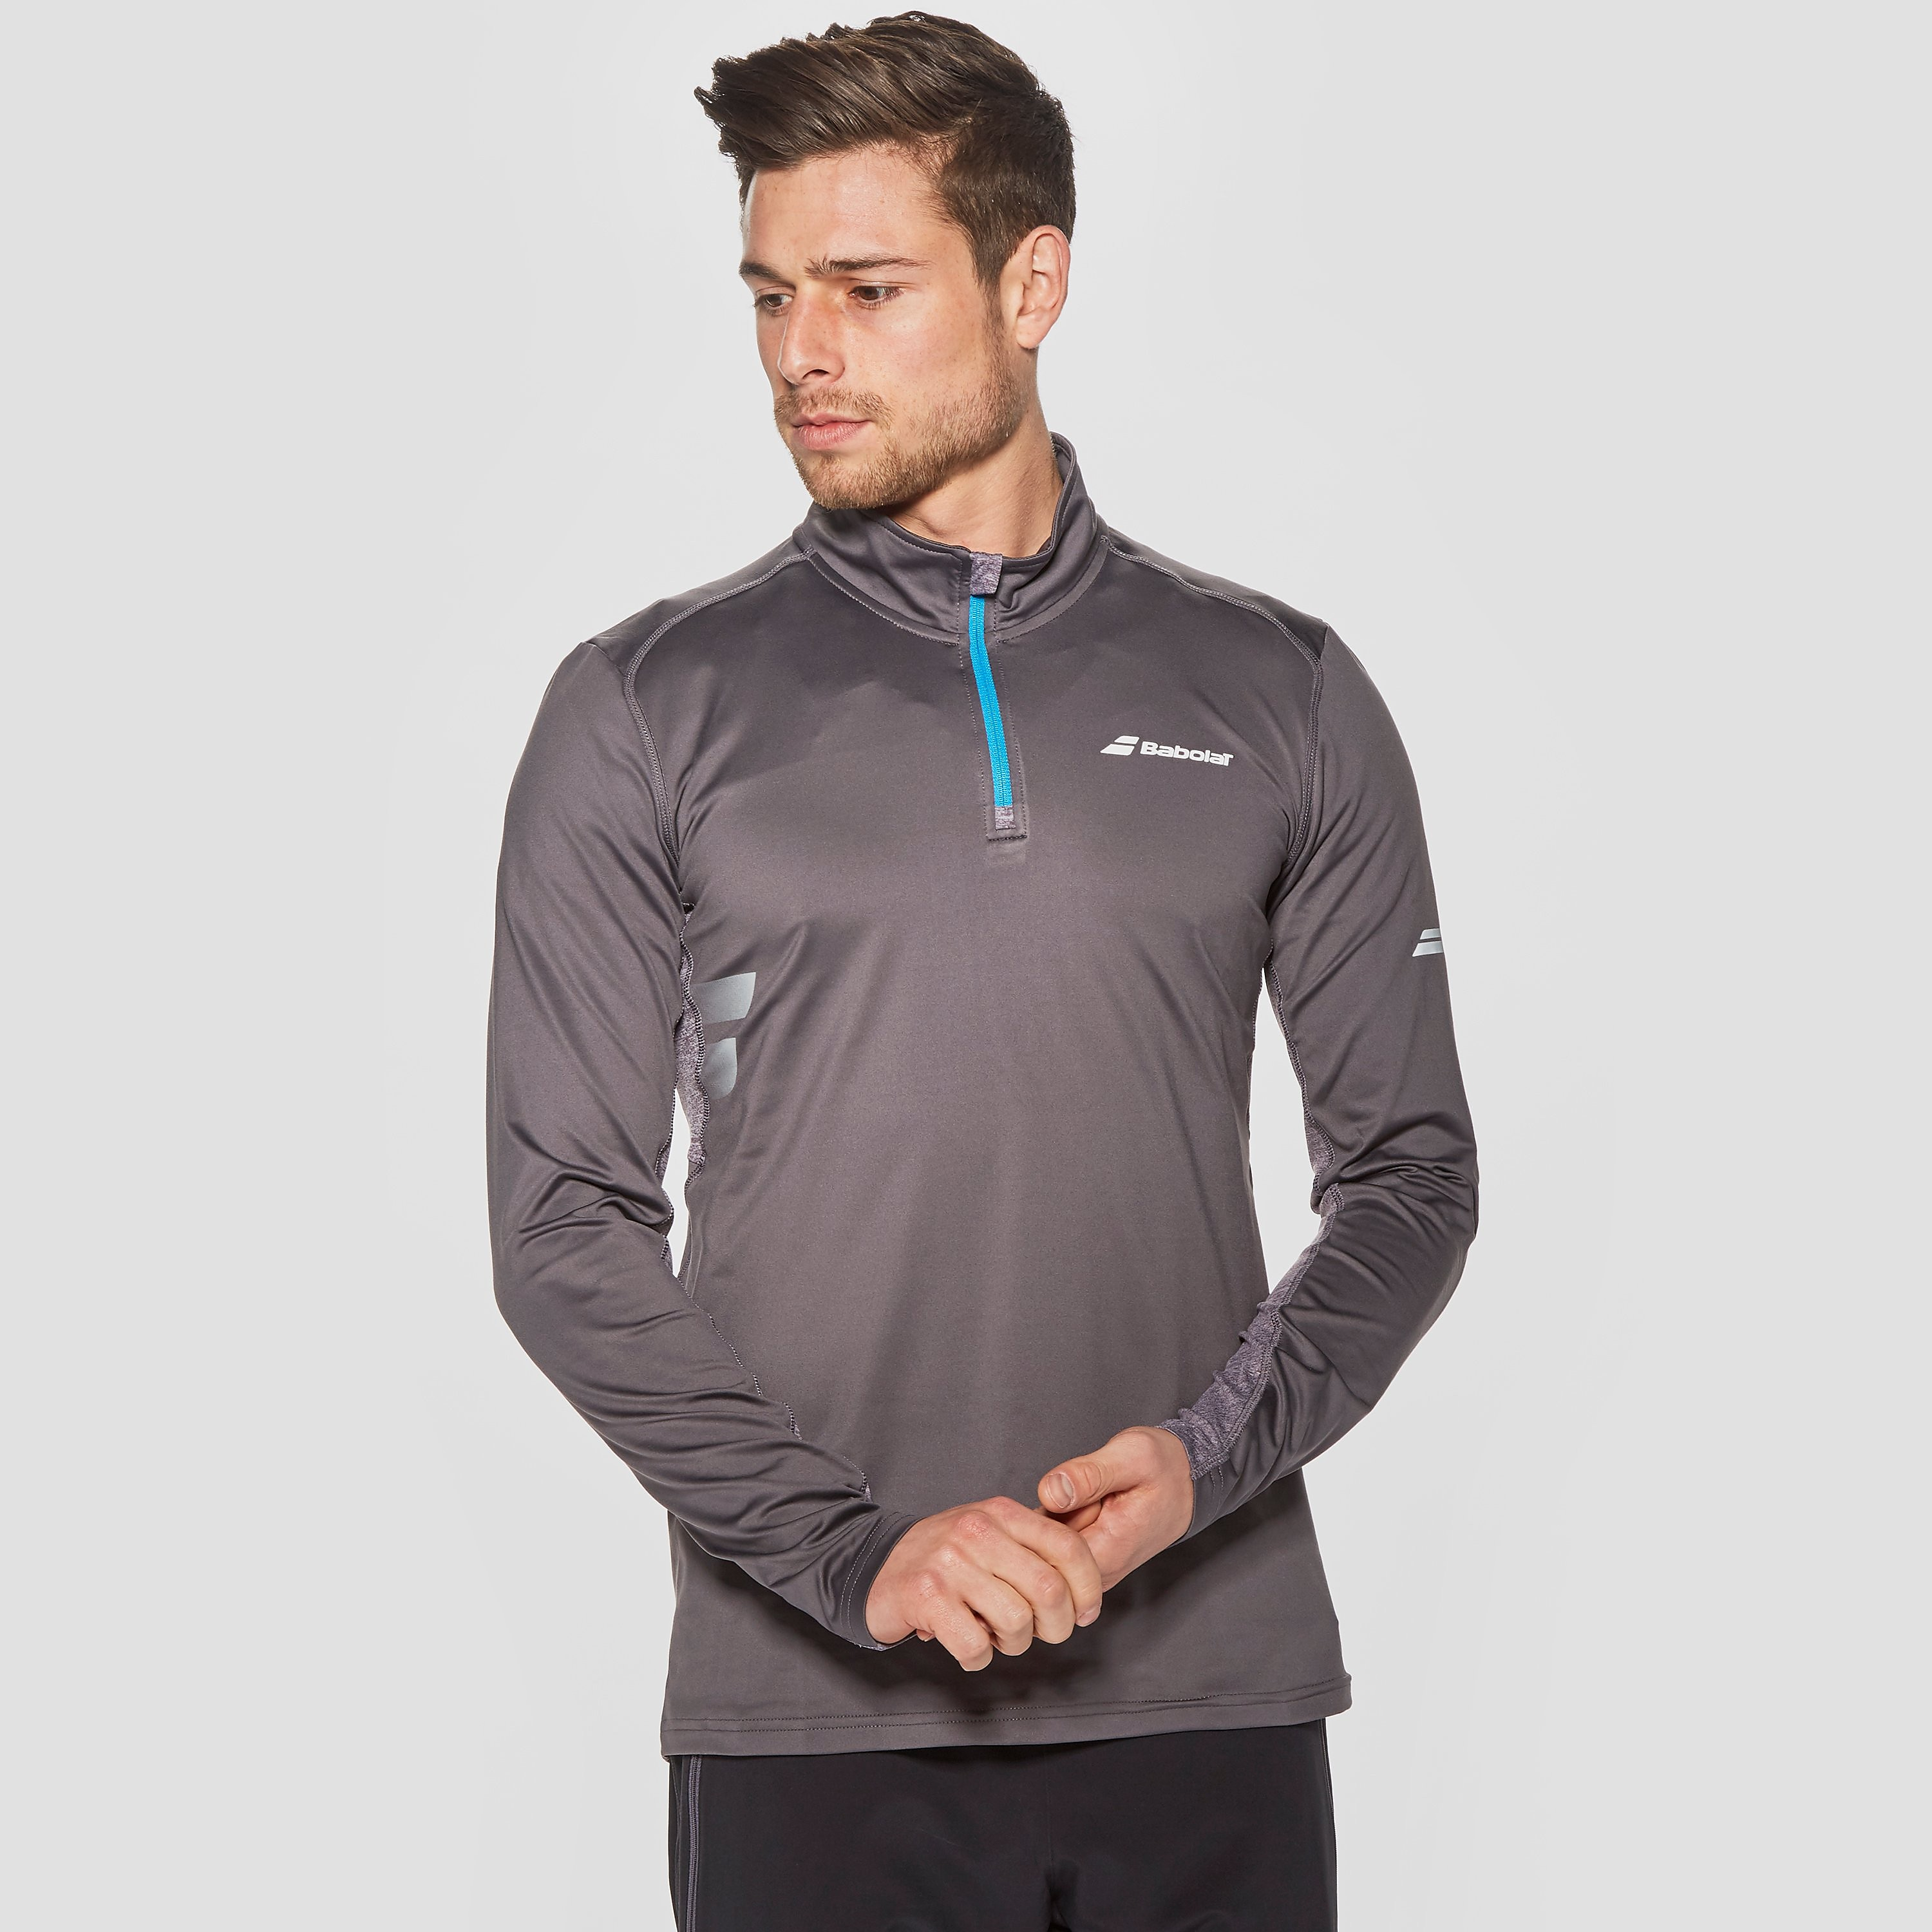 Babolat Core 1/2 Zip Men's Tennis Top